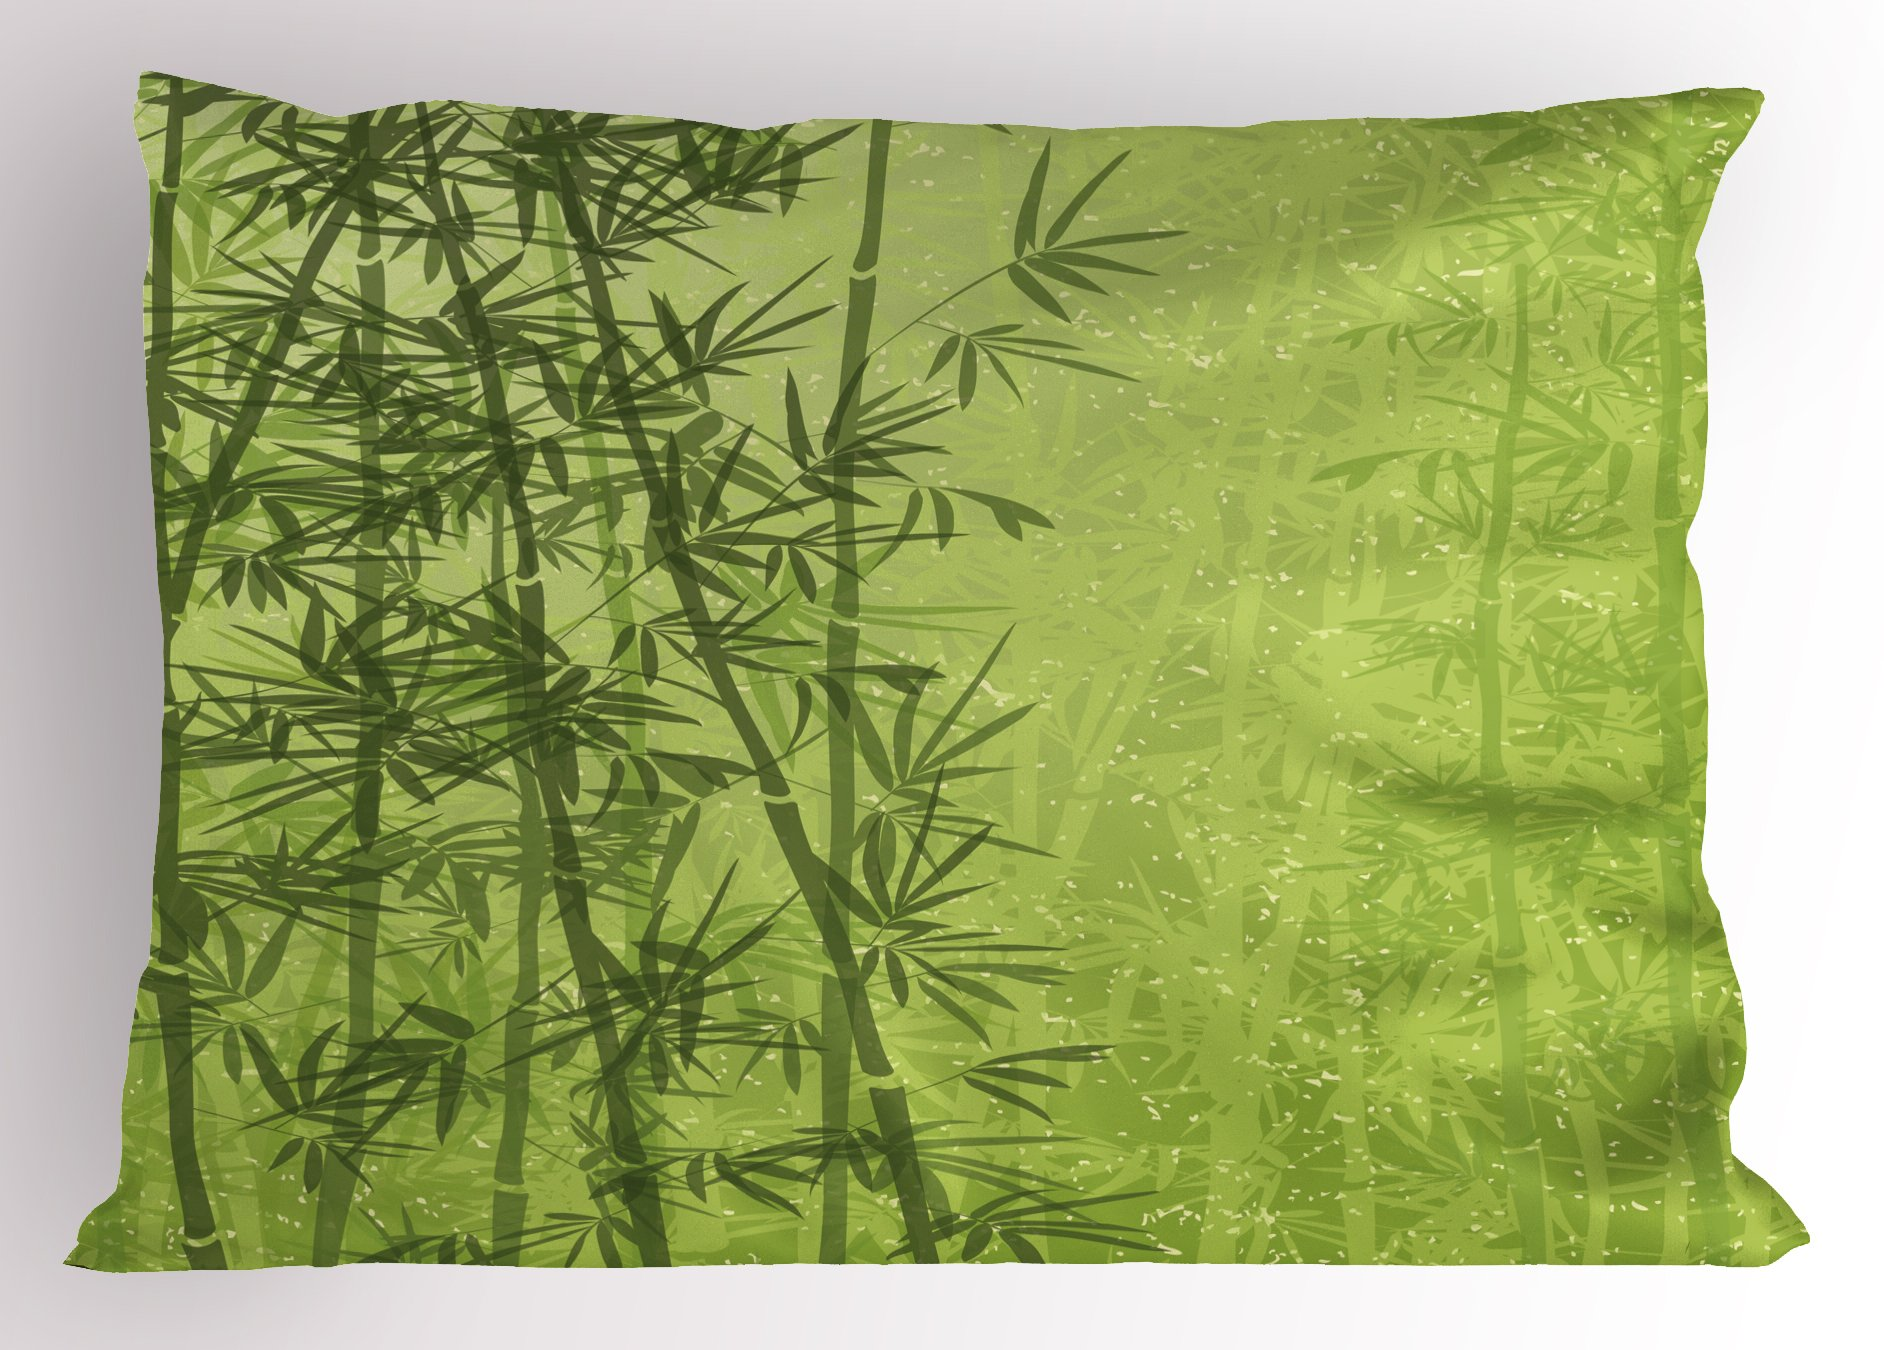 Ambesonne Exotic Pillow Sham, Tropical Forest Rainforest Jungle Paradise Ecology Feng Shui Spa, Decorative Standard Queen Size Printed Pillowcase, 30 X 20 inches, Pistachio Green Fern Green